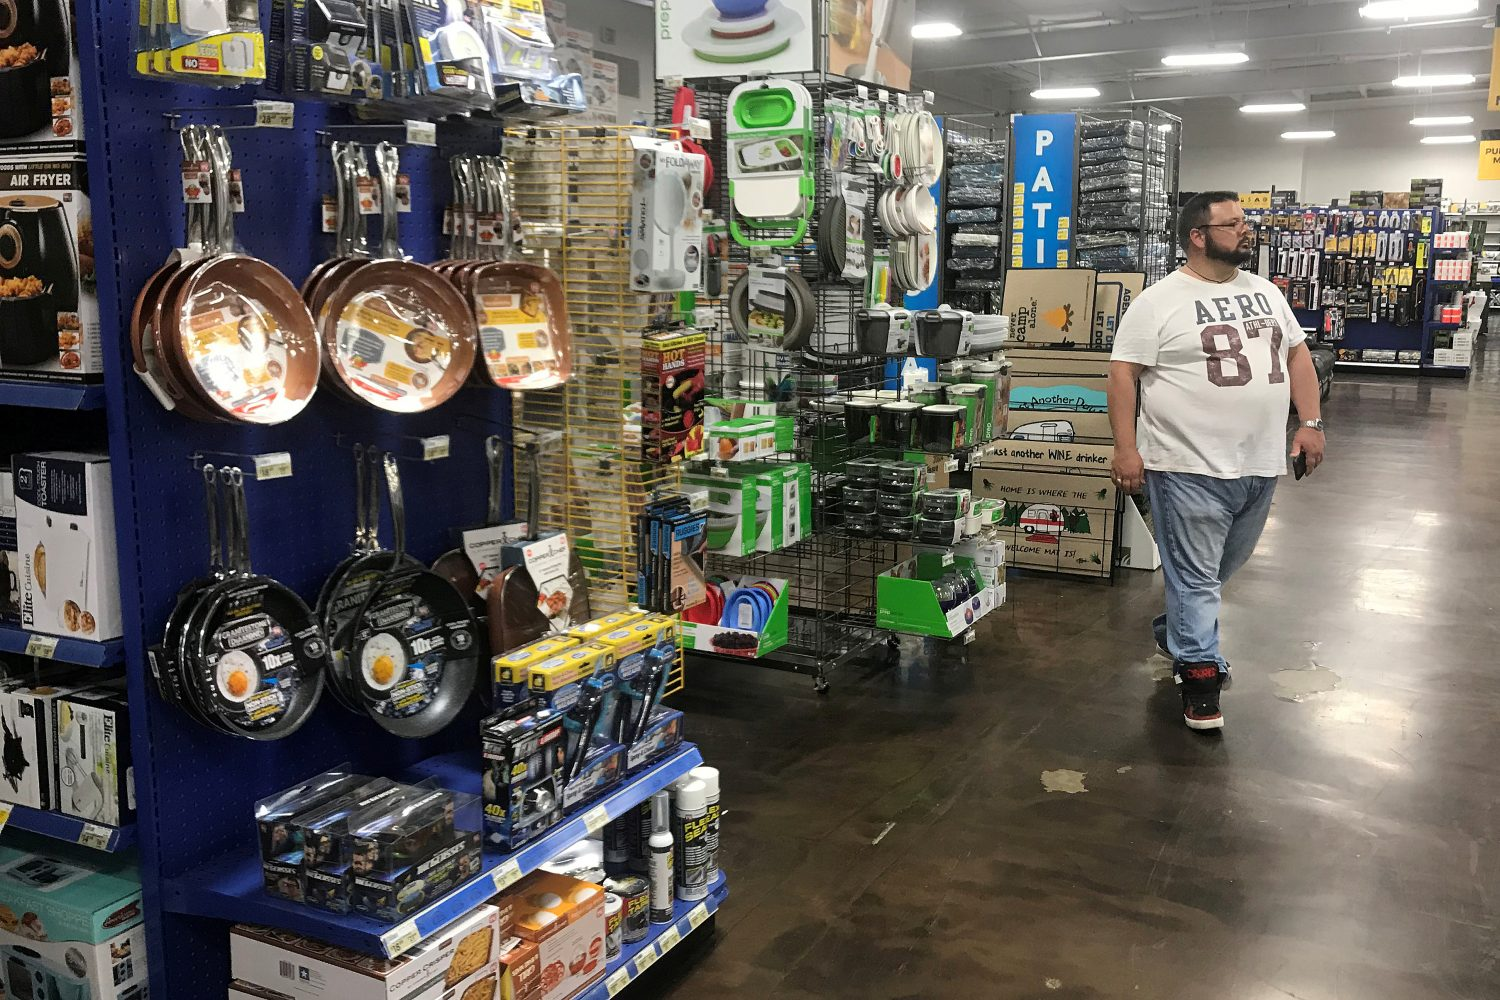 FILE PHOTO: A man shops at a store that sells parts and accessories for Recreational Vehicles (RVs) in Orlando, Florida, U.S., June 20, 2019. REUTERS/Carlo Allegri/File Photo